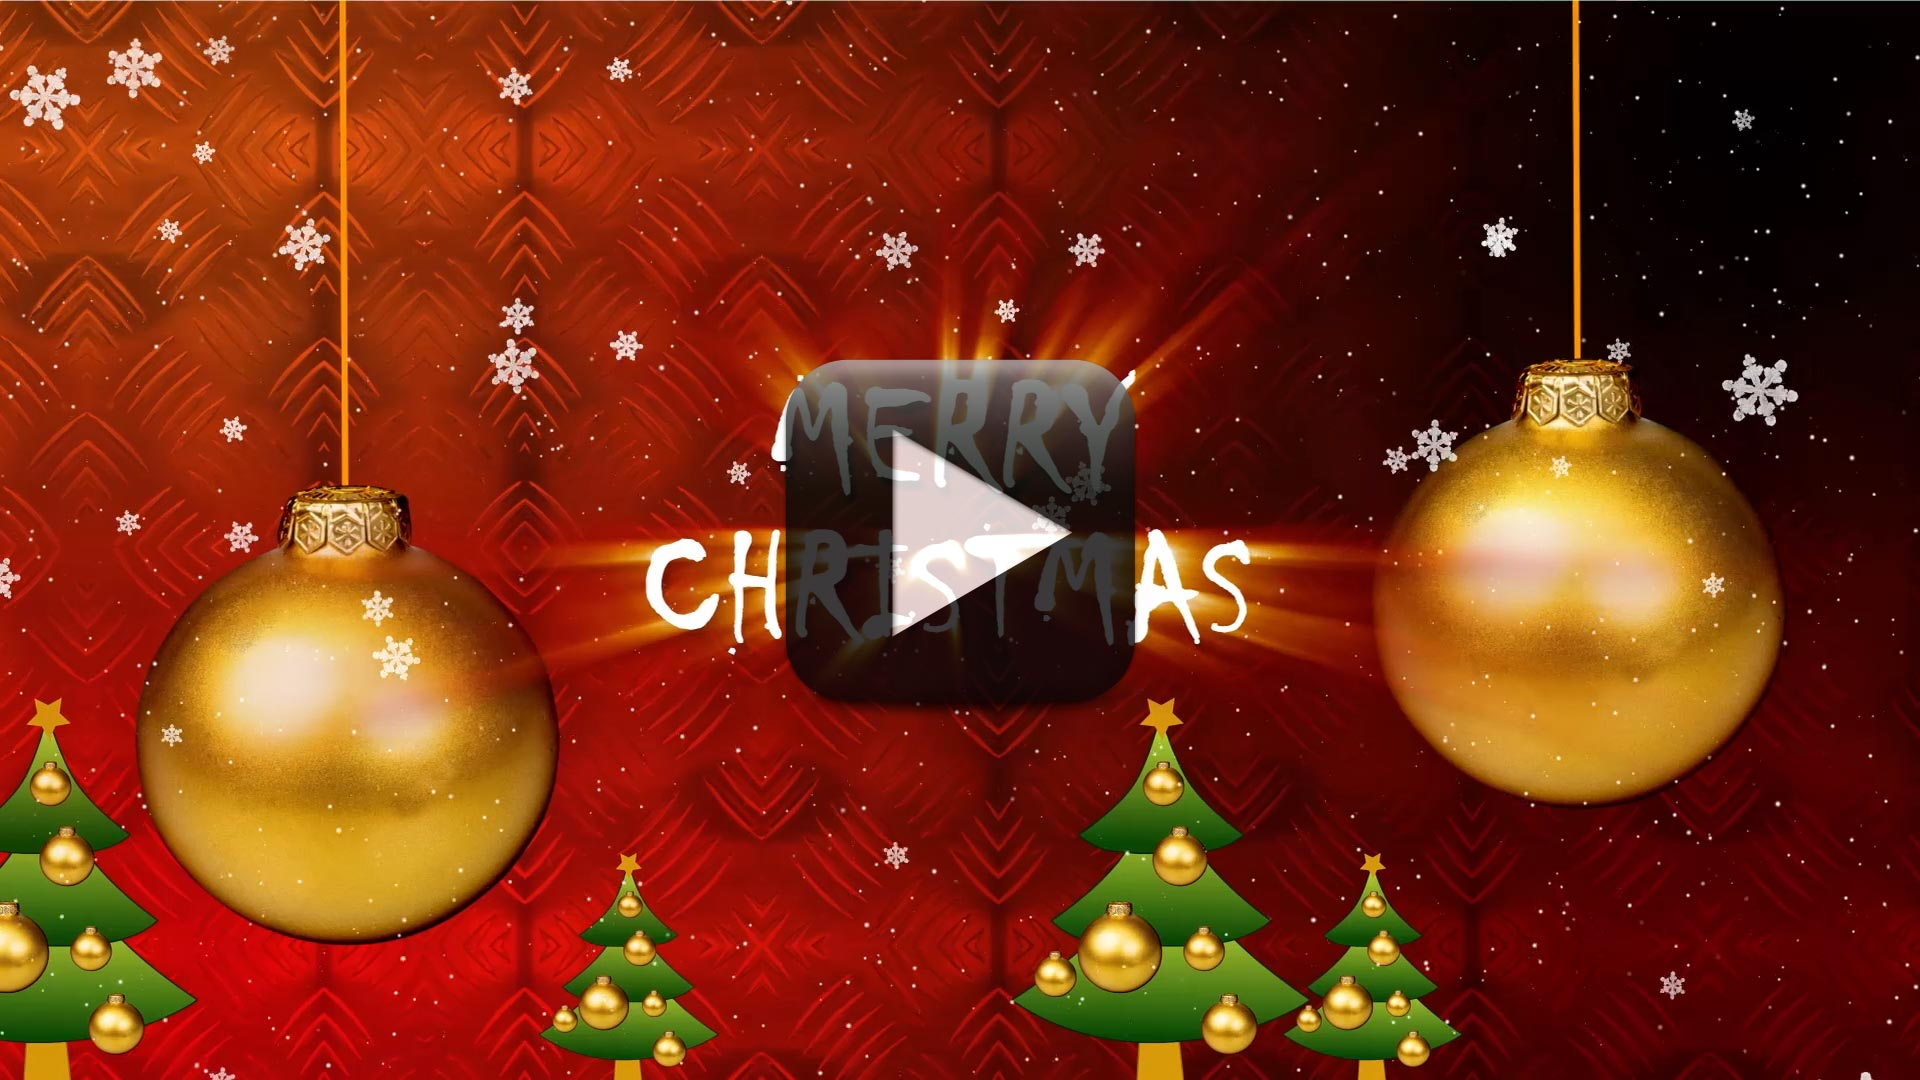 Animated video greetings for christmas 2011 and new year 2012 animated video greetings for christmas 2011 and new year 2012 m4hsunfo